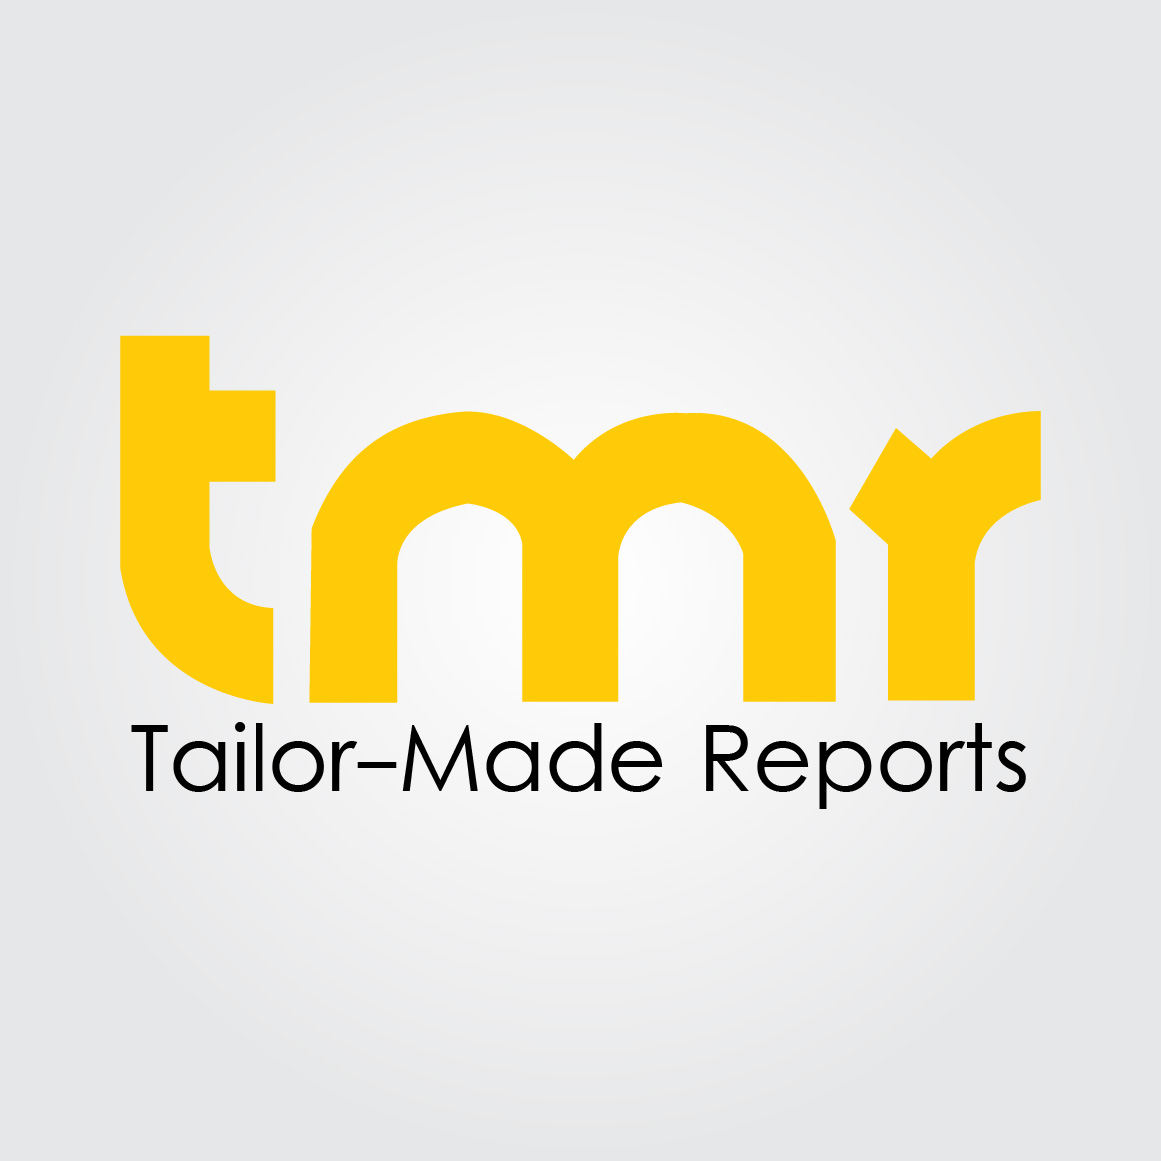 Robo Advisors Market - Rapid Rise in Number of Banks that are Integrating Robo Advisors | TMR Research Study